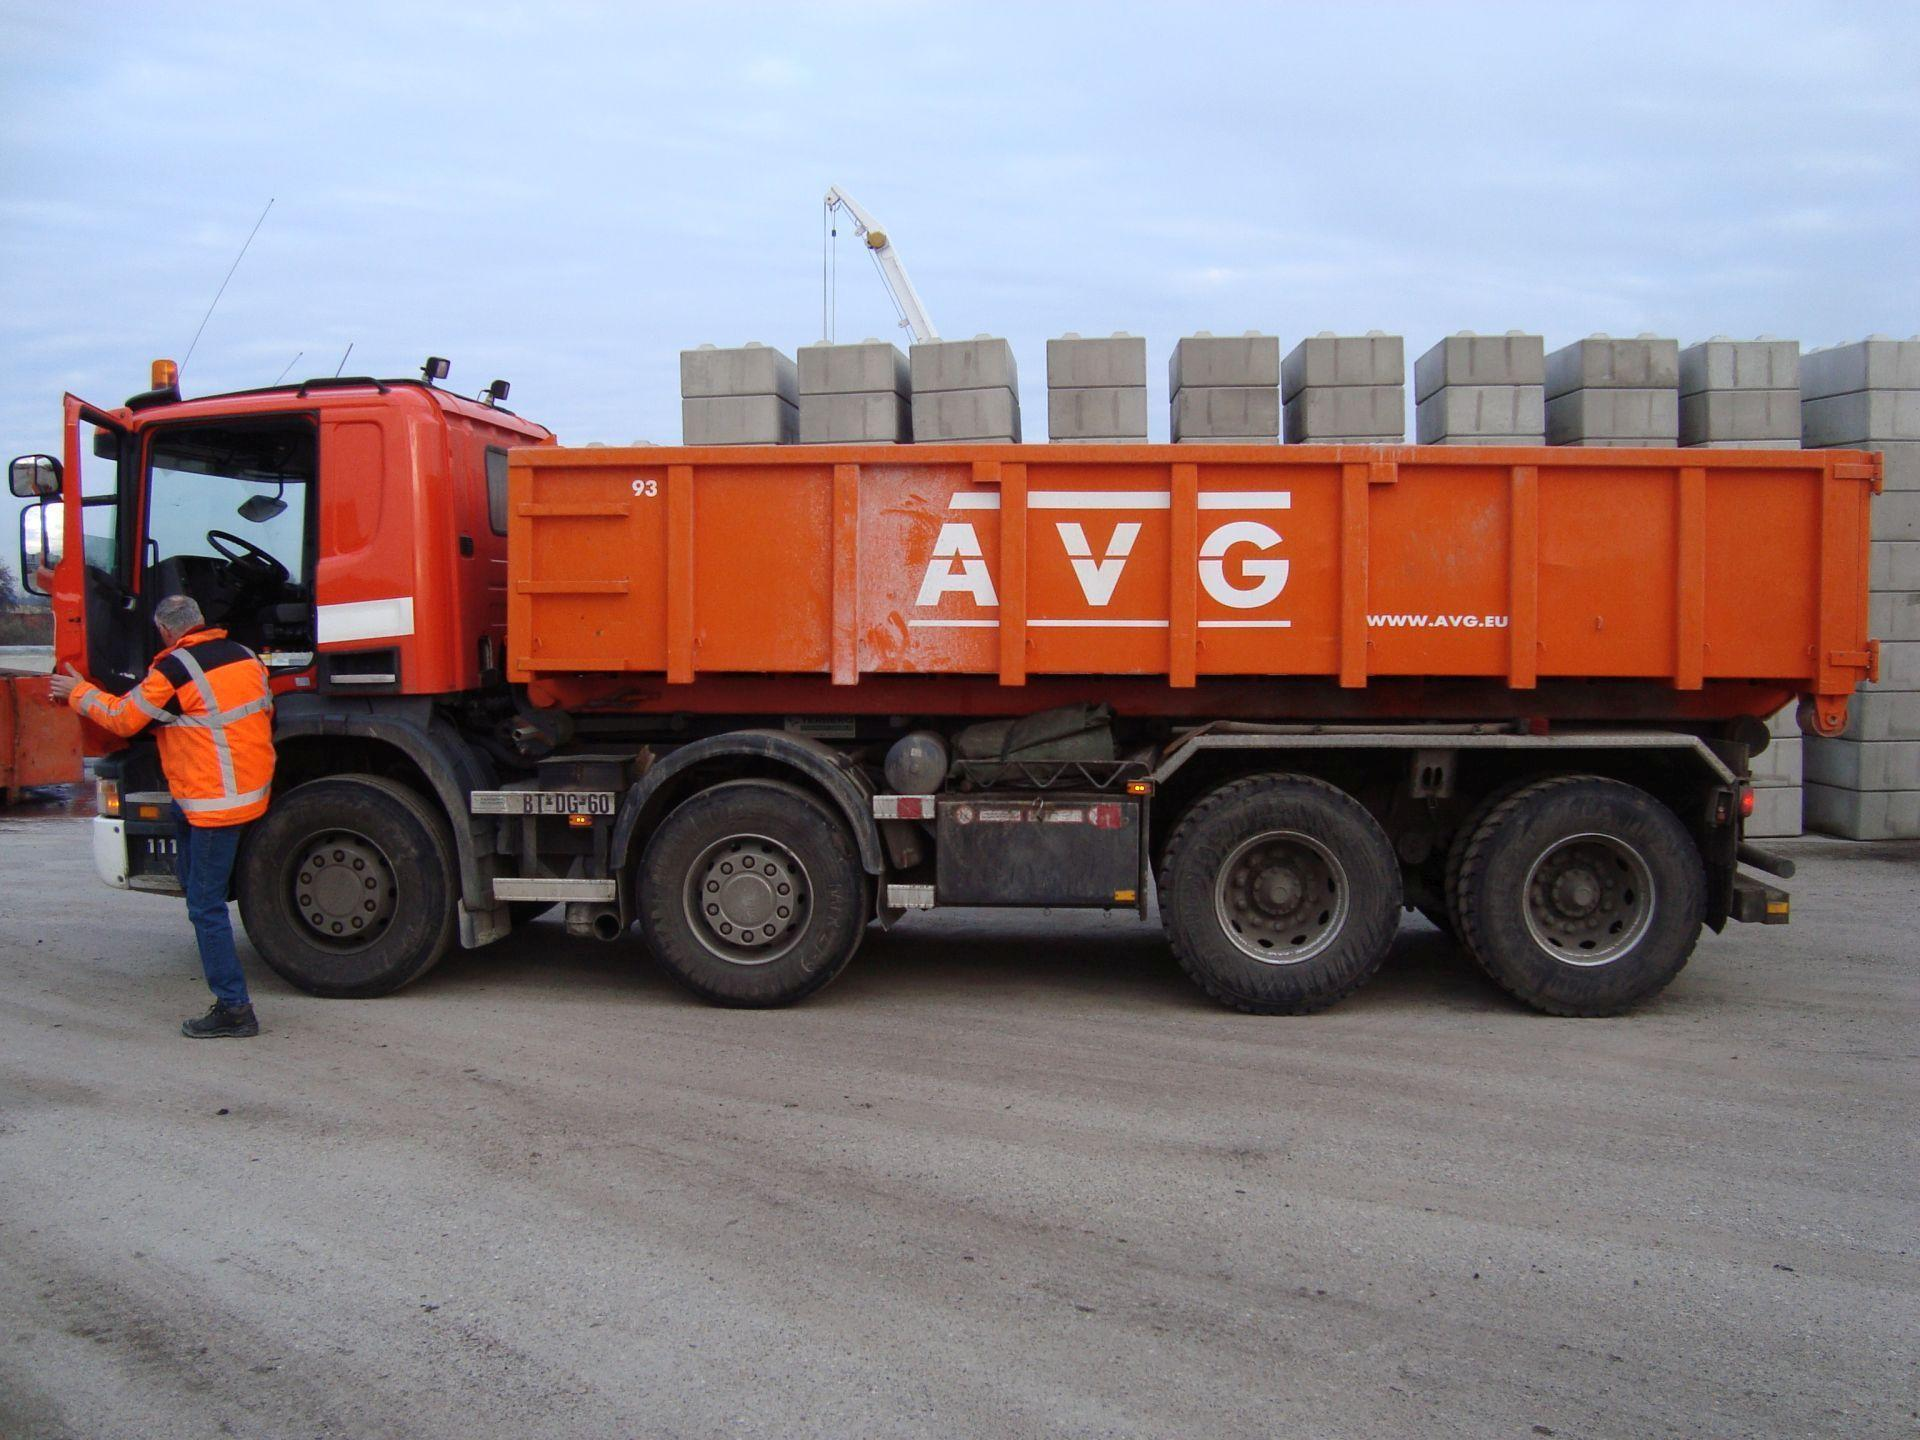 lange-container-1-avg-bouwstoffen